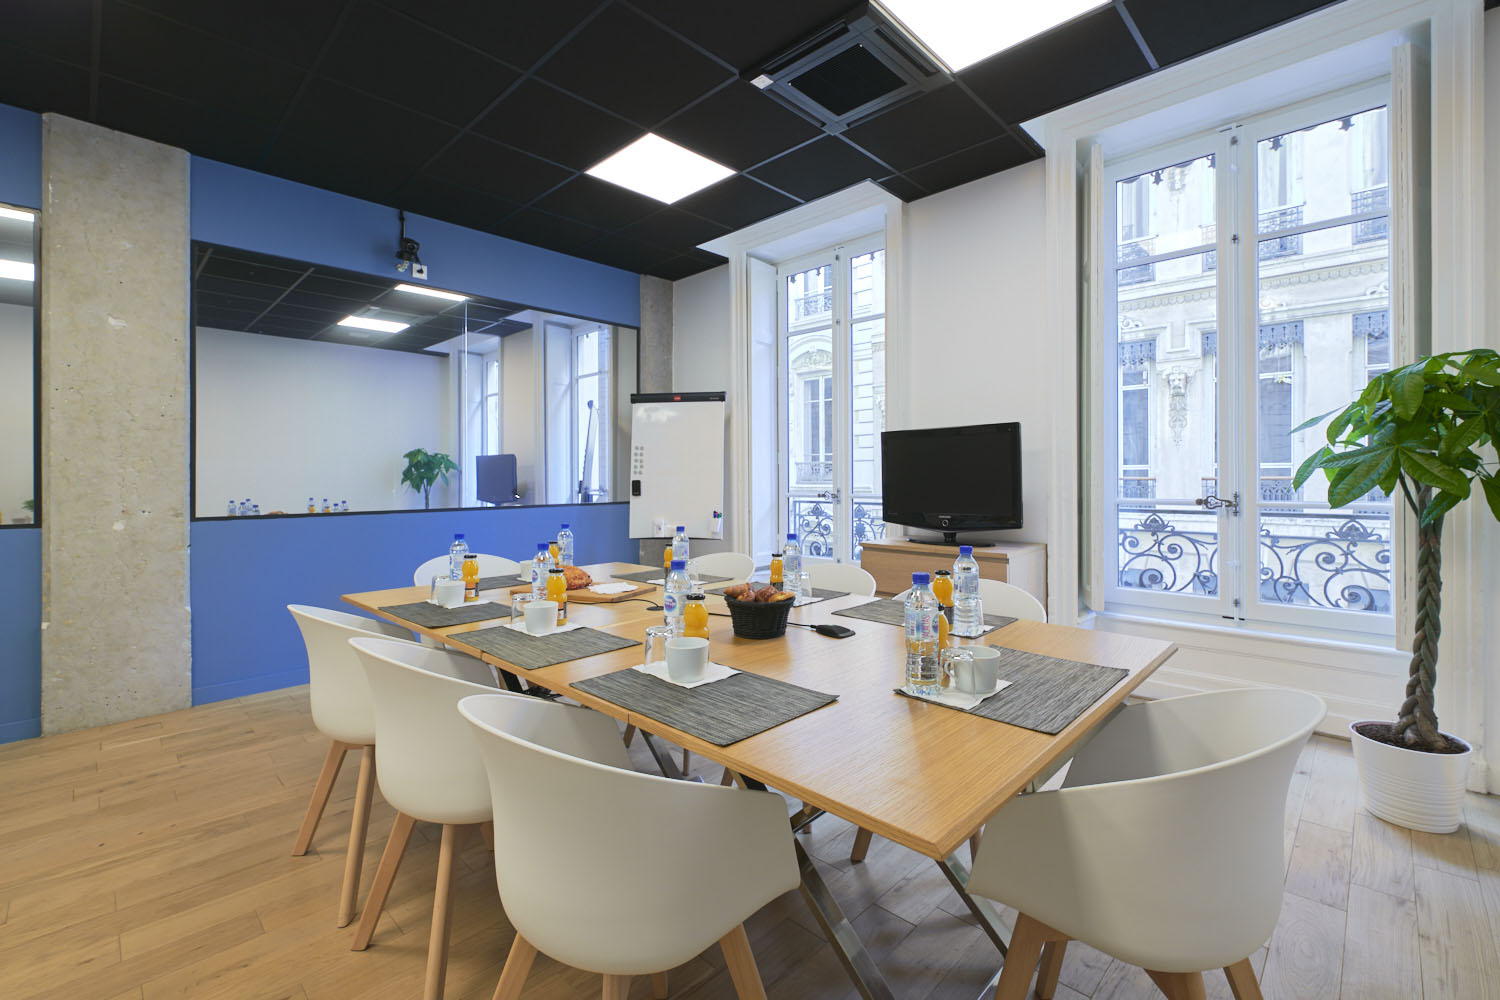 Espace_Rhone_salle_de_réunion_Jacobins_LYON_FRANCE_qualitatives_marketing_facilities_Qualitative_viewing_facilities